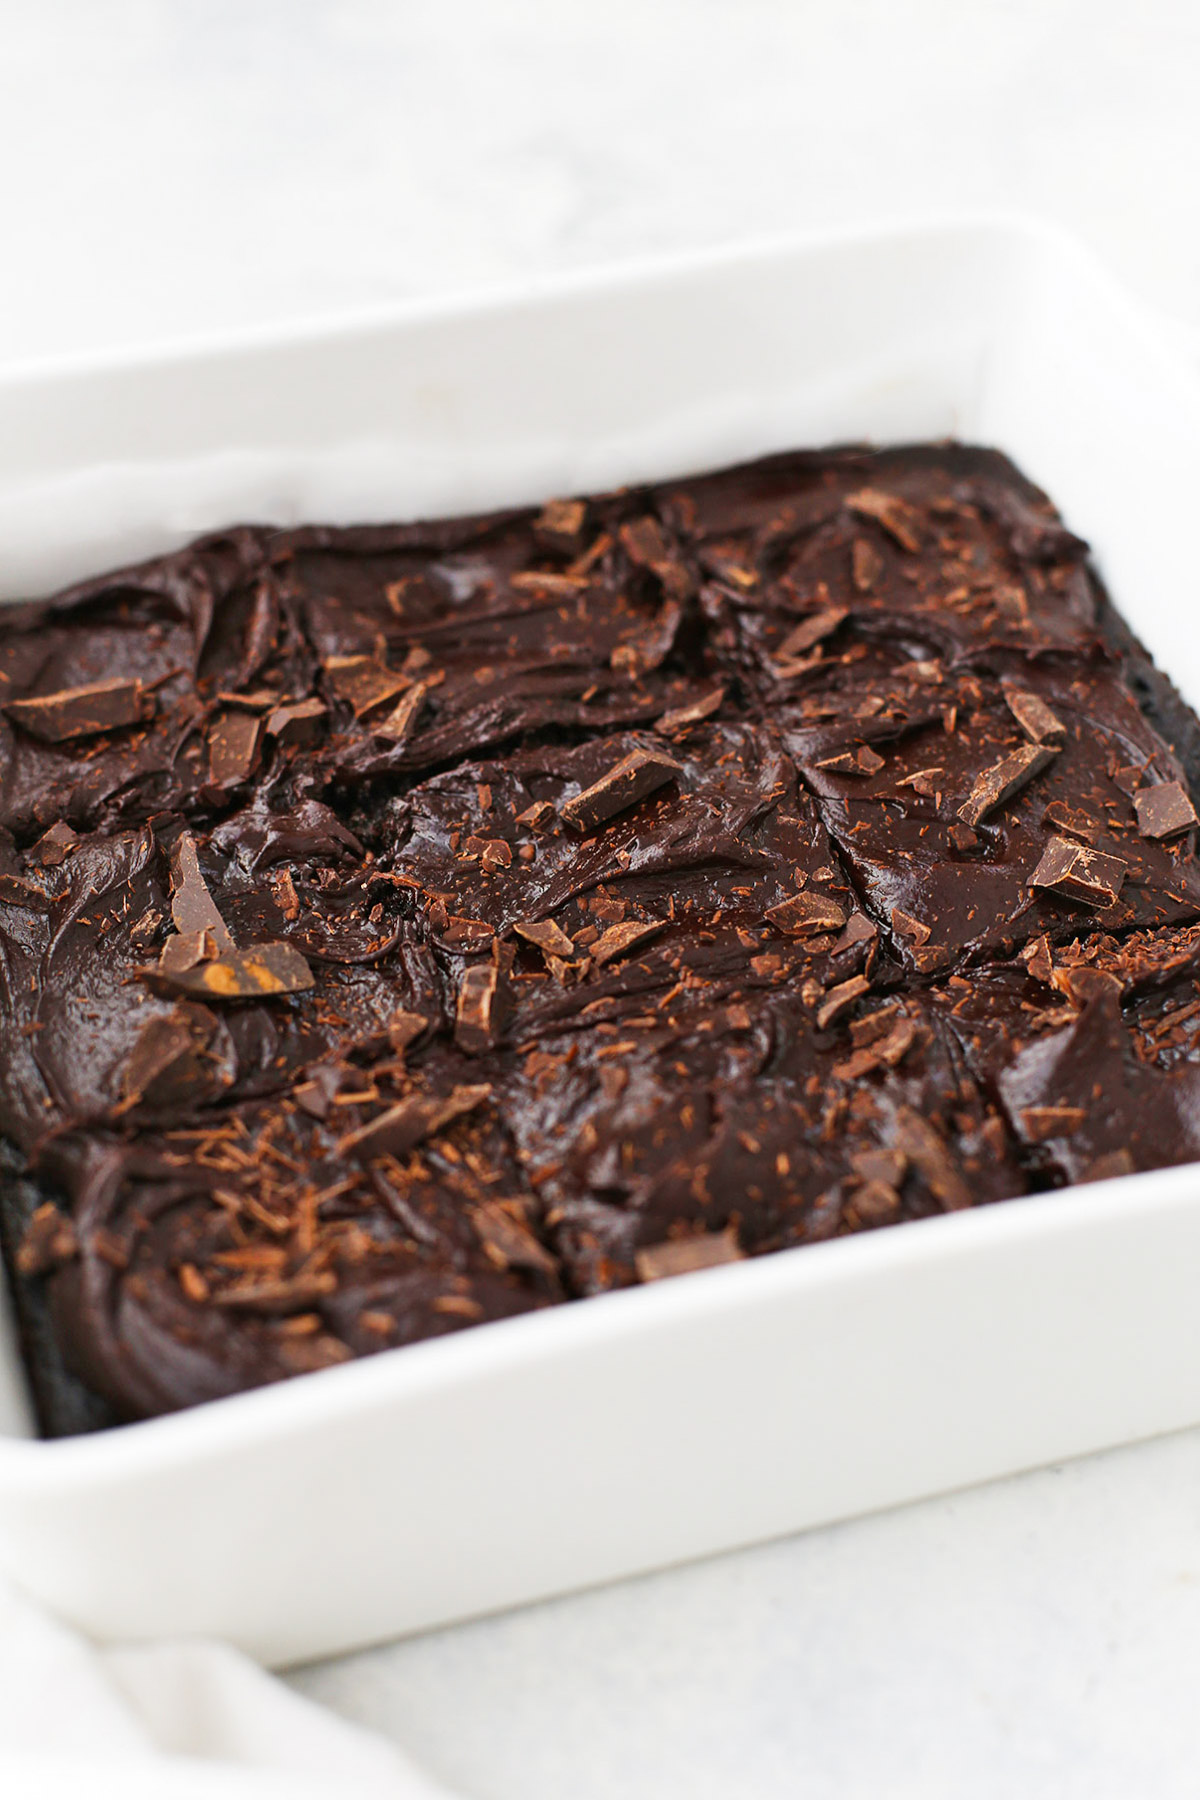 Gluten Free Chocolate Zucchini Cake with Healthy Chocolate Frosting